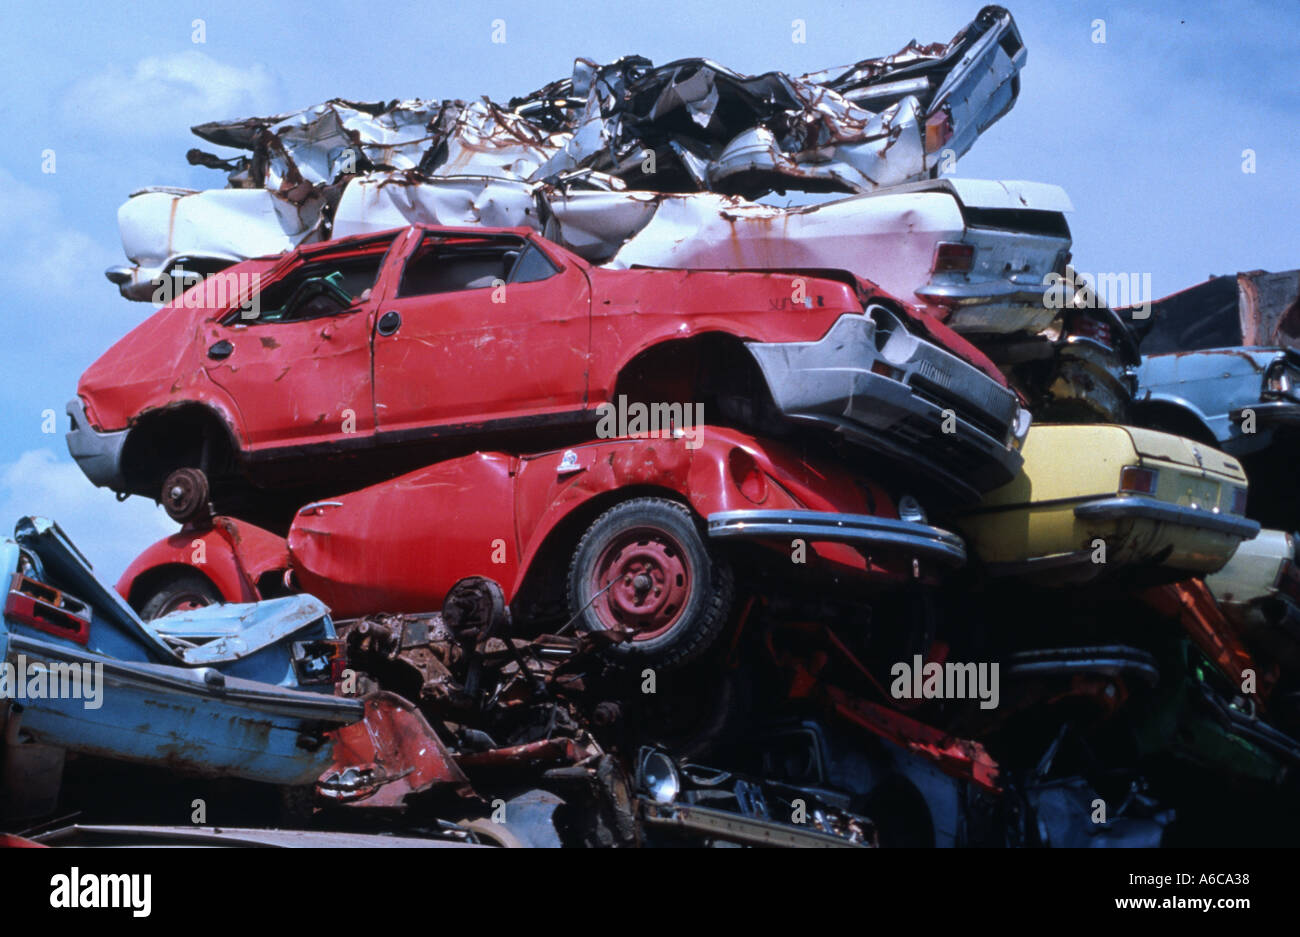 scrap car wrecks metal junk rust scrap yard scrap dealer recycling ...